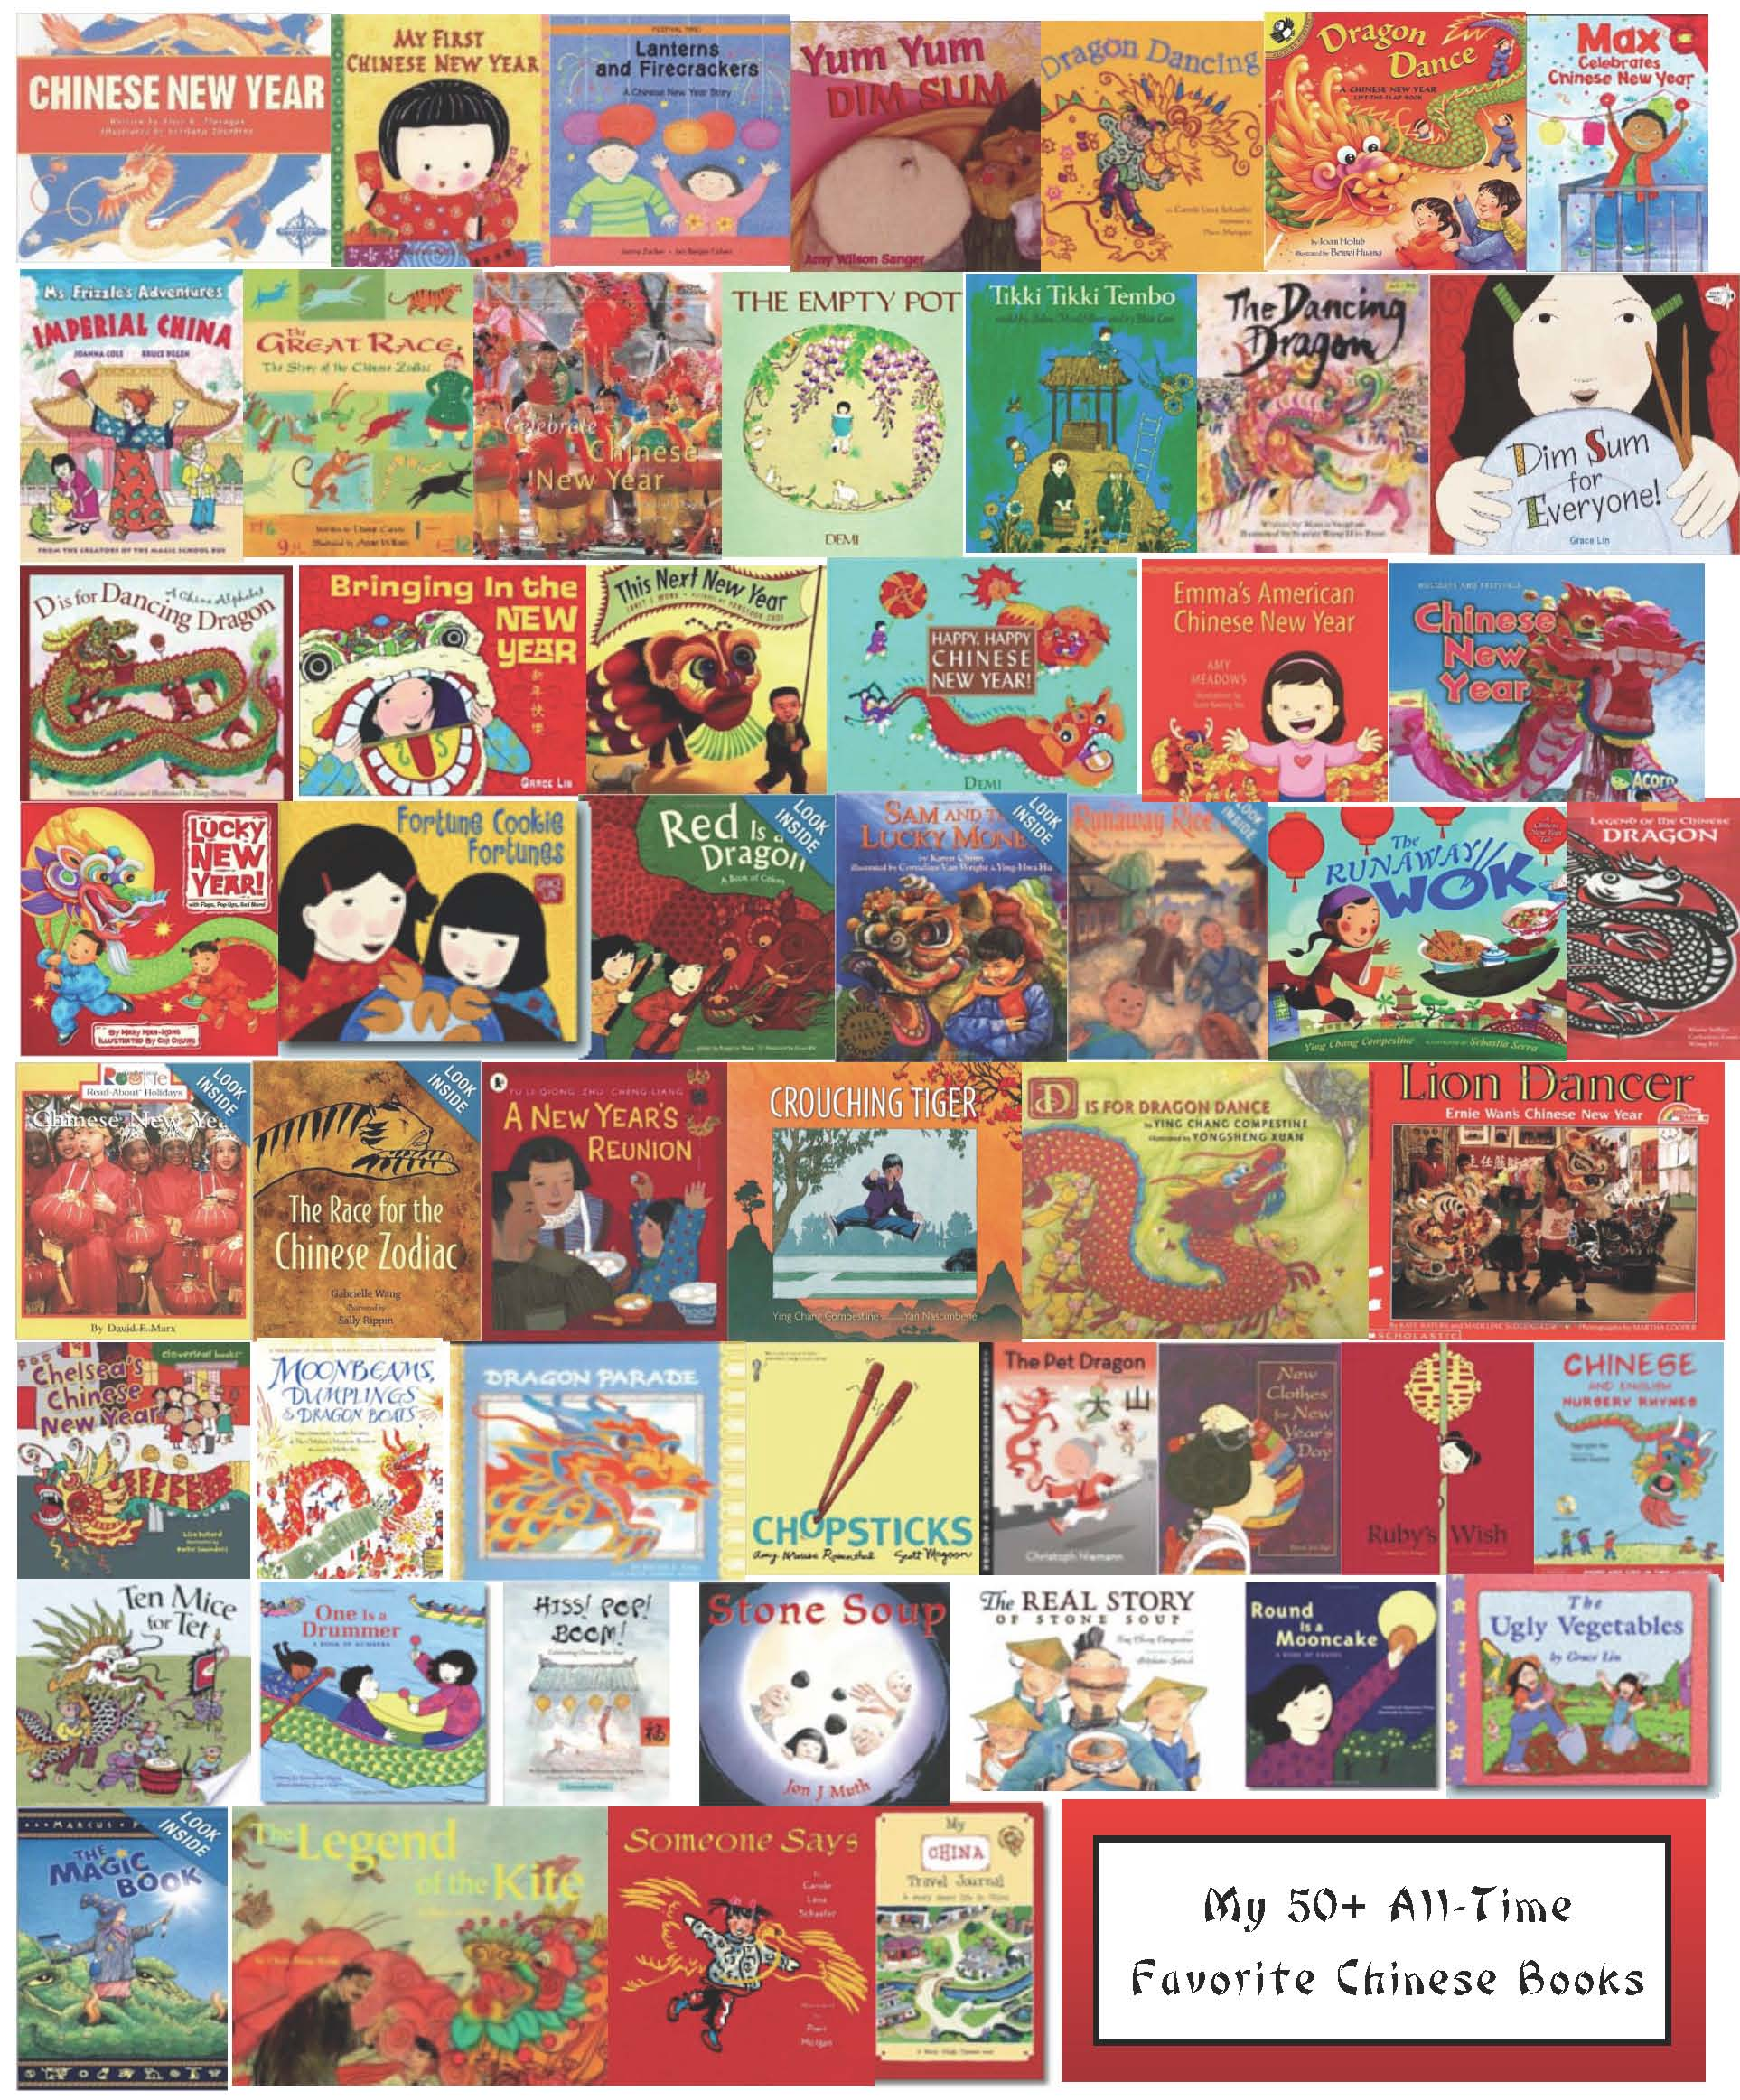 chinese new year activities, a list of 53 favorite Chinese books, annotated bibliography of 50 Chinese New Year Books, ideas for chinese new year, chinese new year crafts, spring festival activities, lunar new year activities, china activies, chinese new year alphabet cards, chinese new year bookmarks, chinese new year puzzles, chinese new year writing prompts, chinese new year crafts, year of the horse activities, dragon activites, snake activities, chinese new year crafts, chinese new year bibliography, chinese new year books, fan crafts, lantern crafts, lantern pattern,